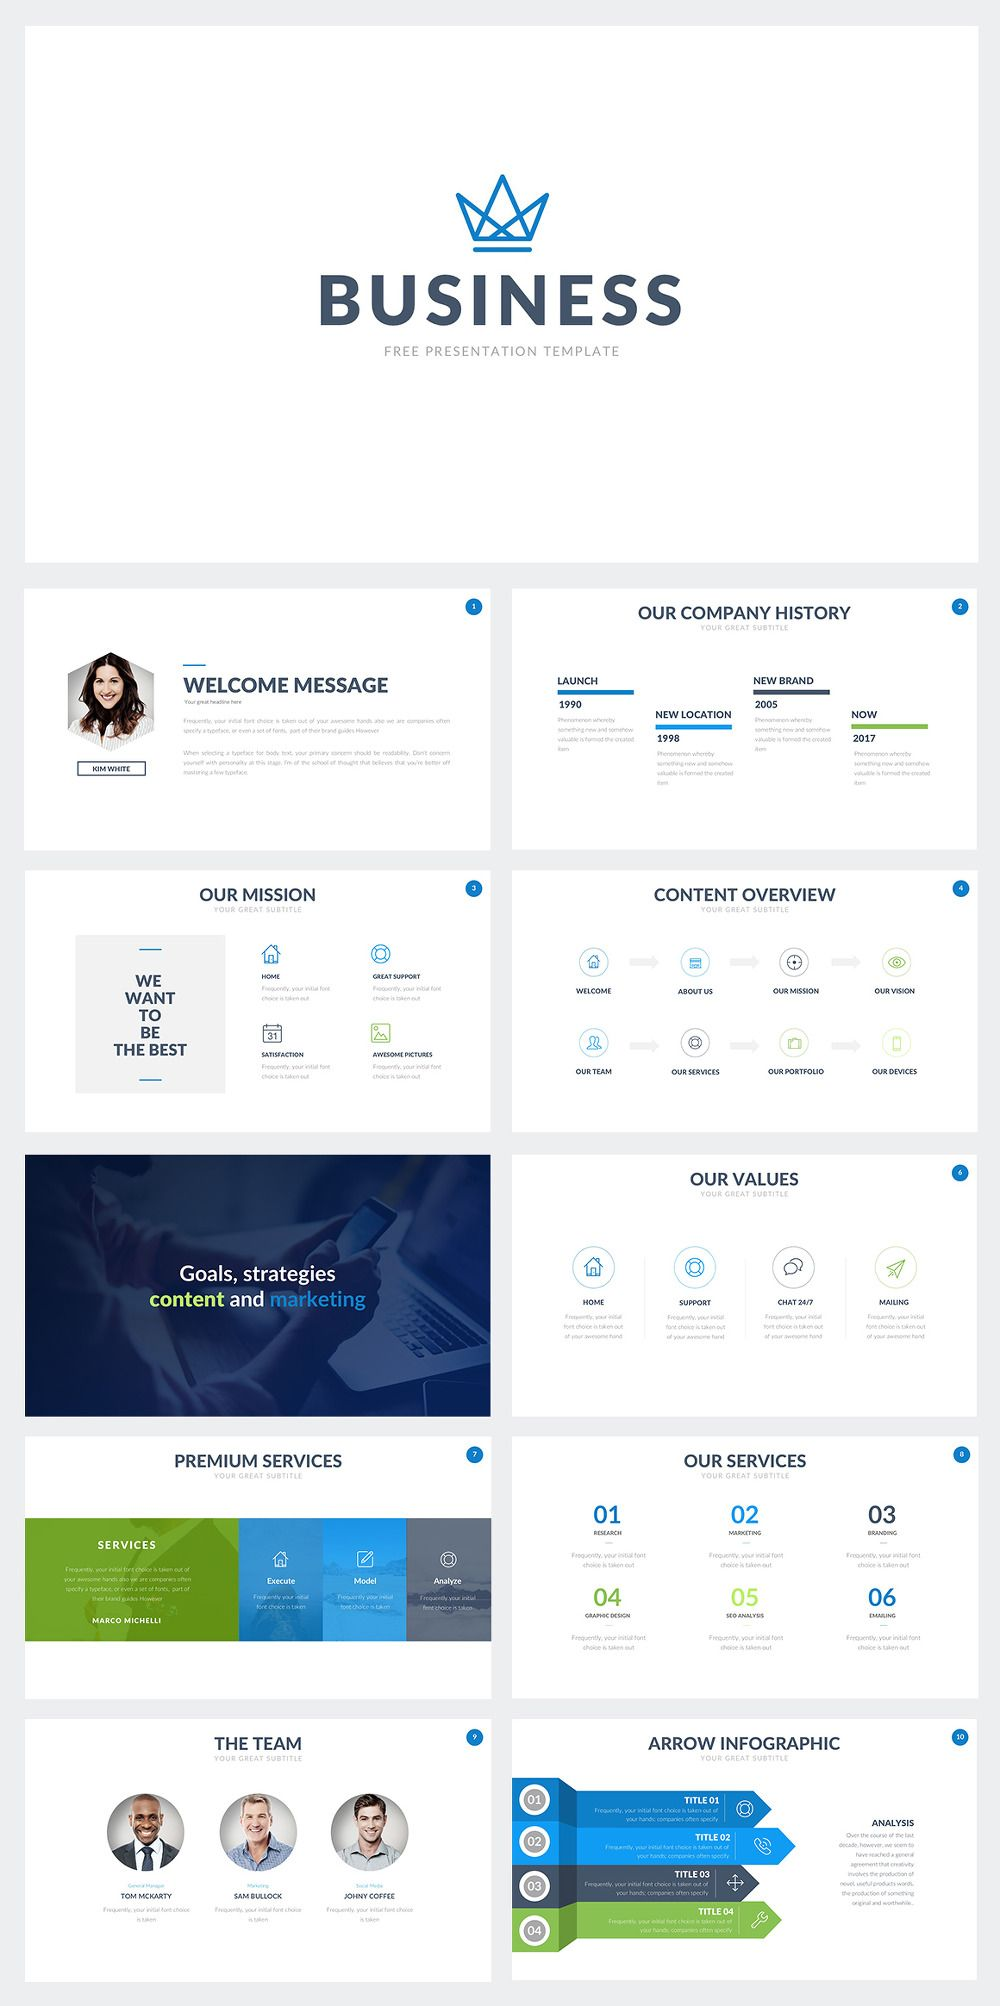 ppt free business powerpoint ppt free business powerpoint template ppt toneelgroepblik Images